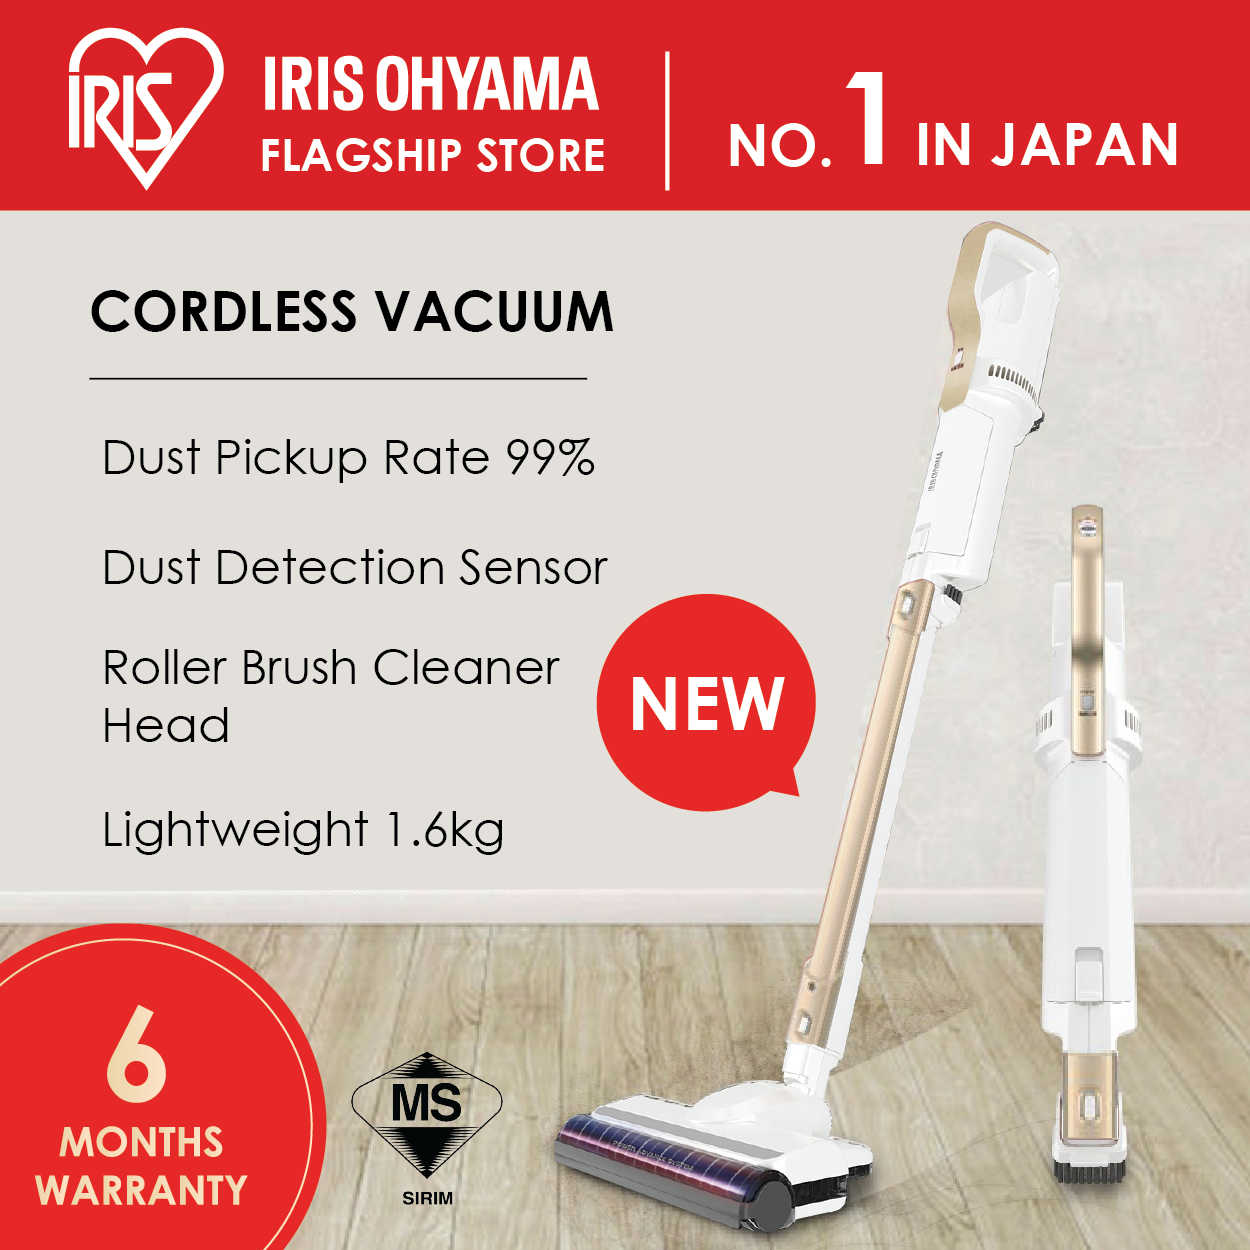 IRIS OHYAMA IC-SLDCP6 Cordless Vacuum Cleaner - Gold (6 Months Warranty)